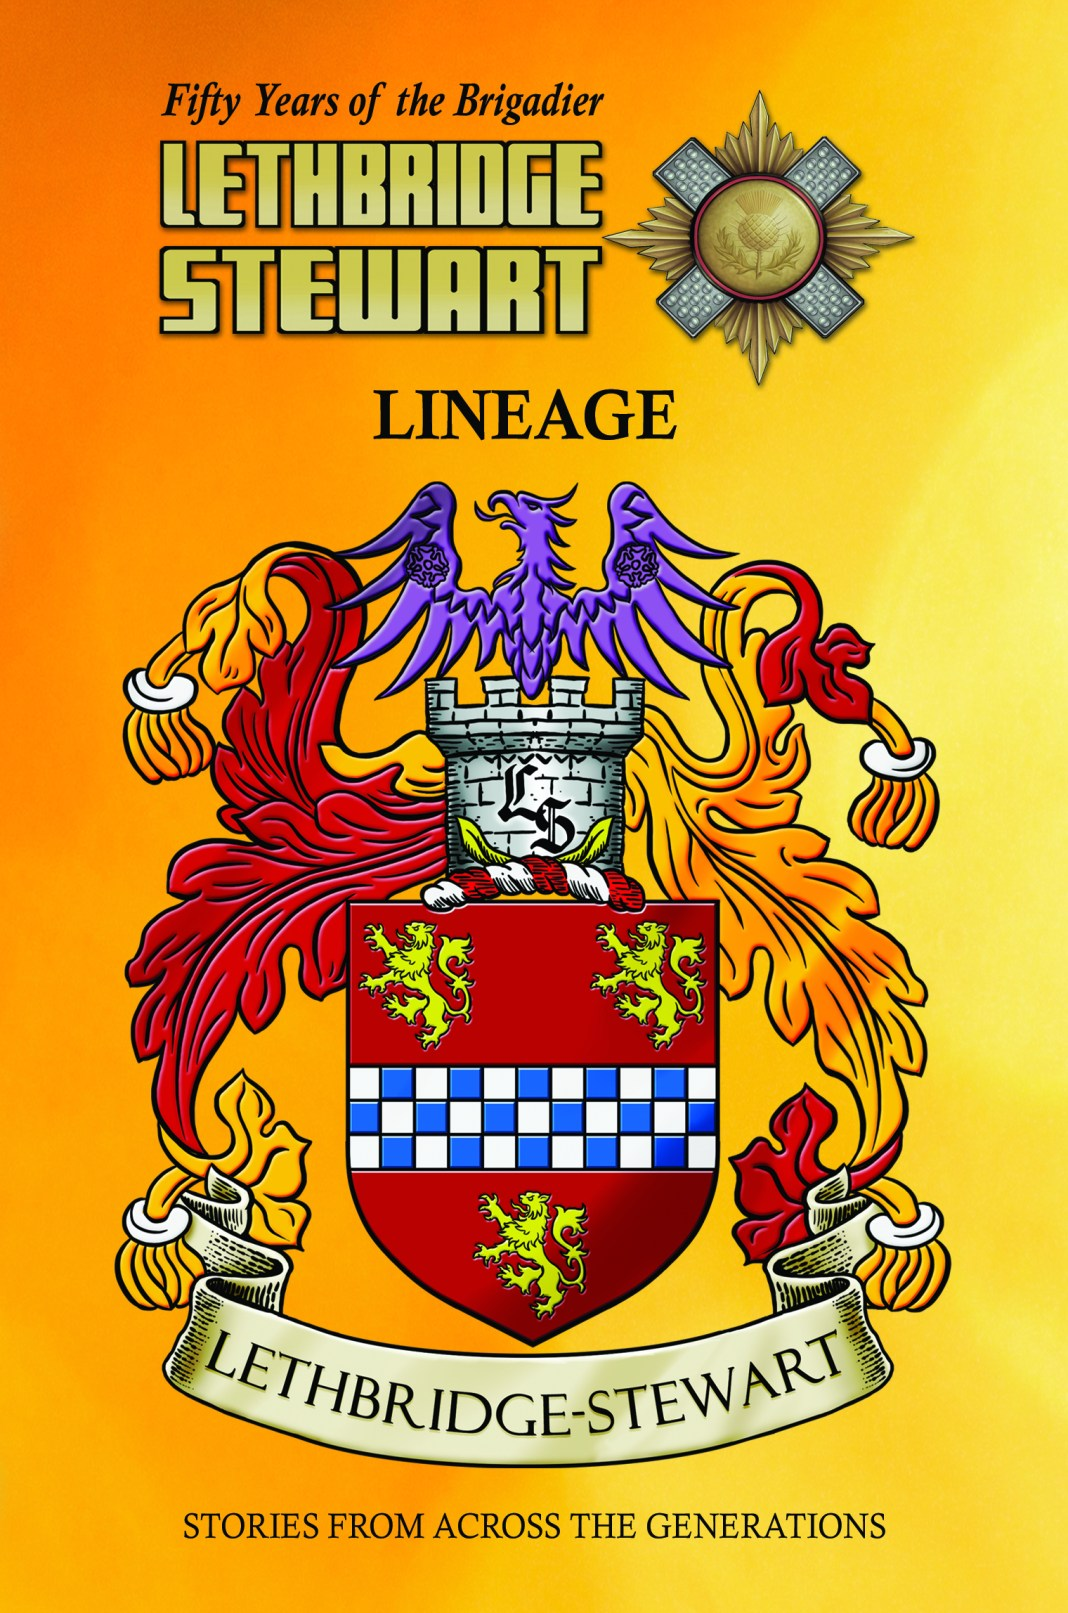 Lethbridge-Stewart: Lineage from Candy Jar Books